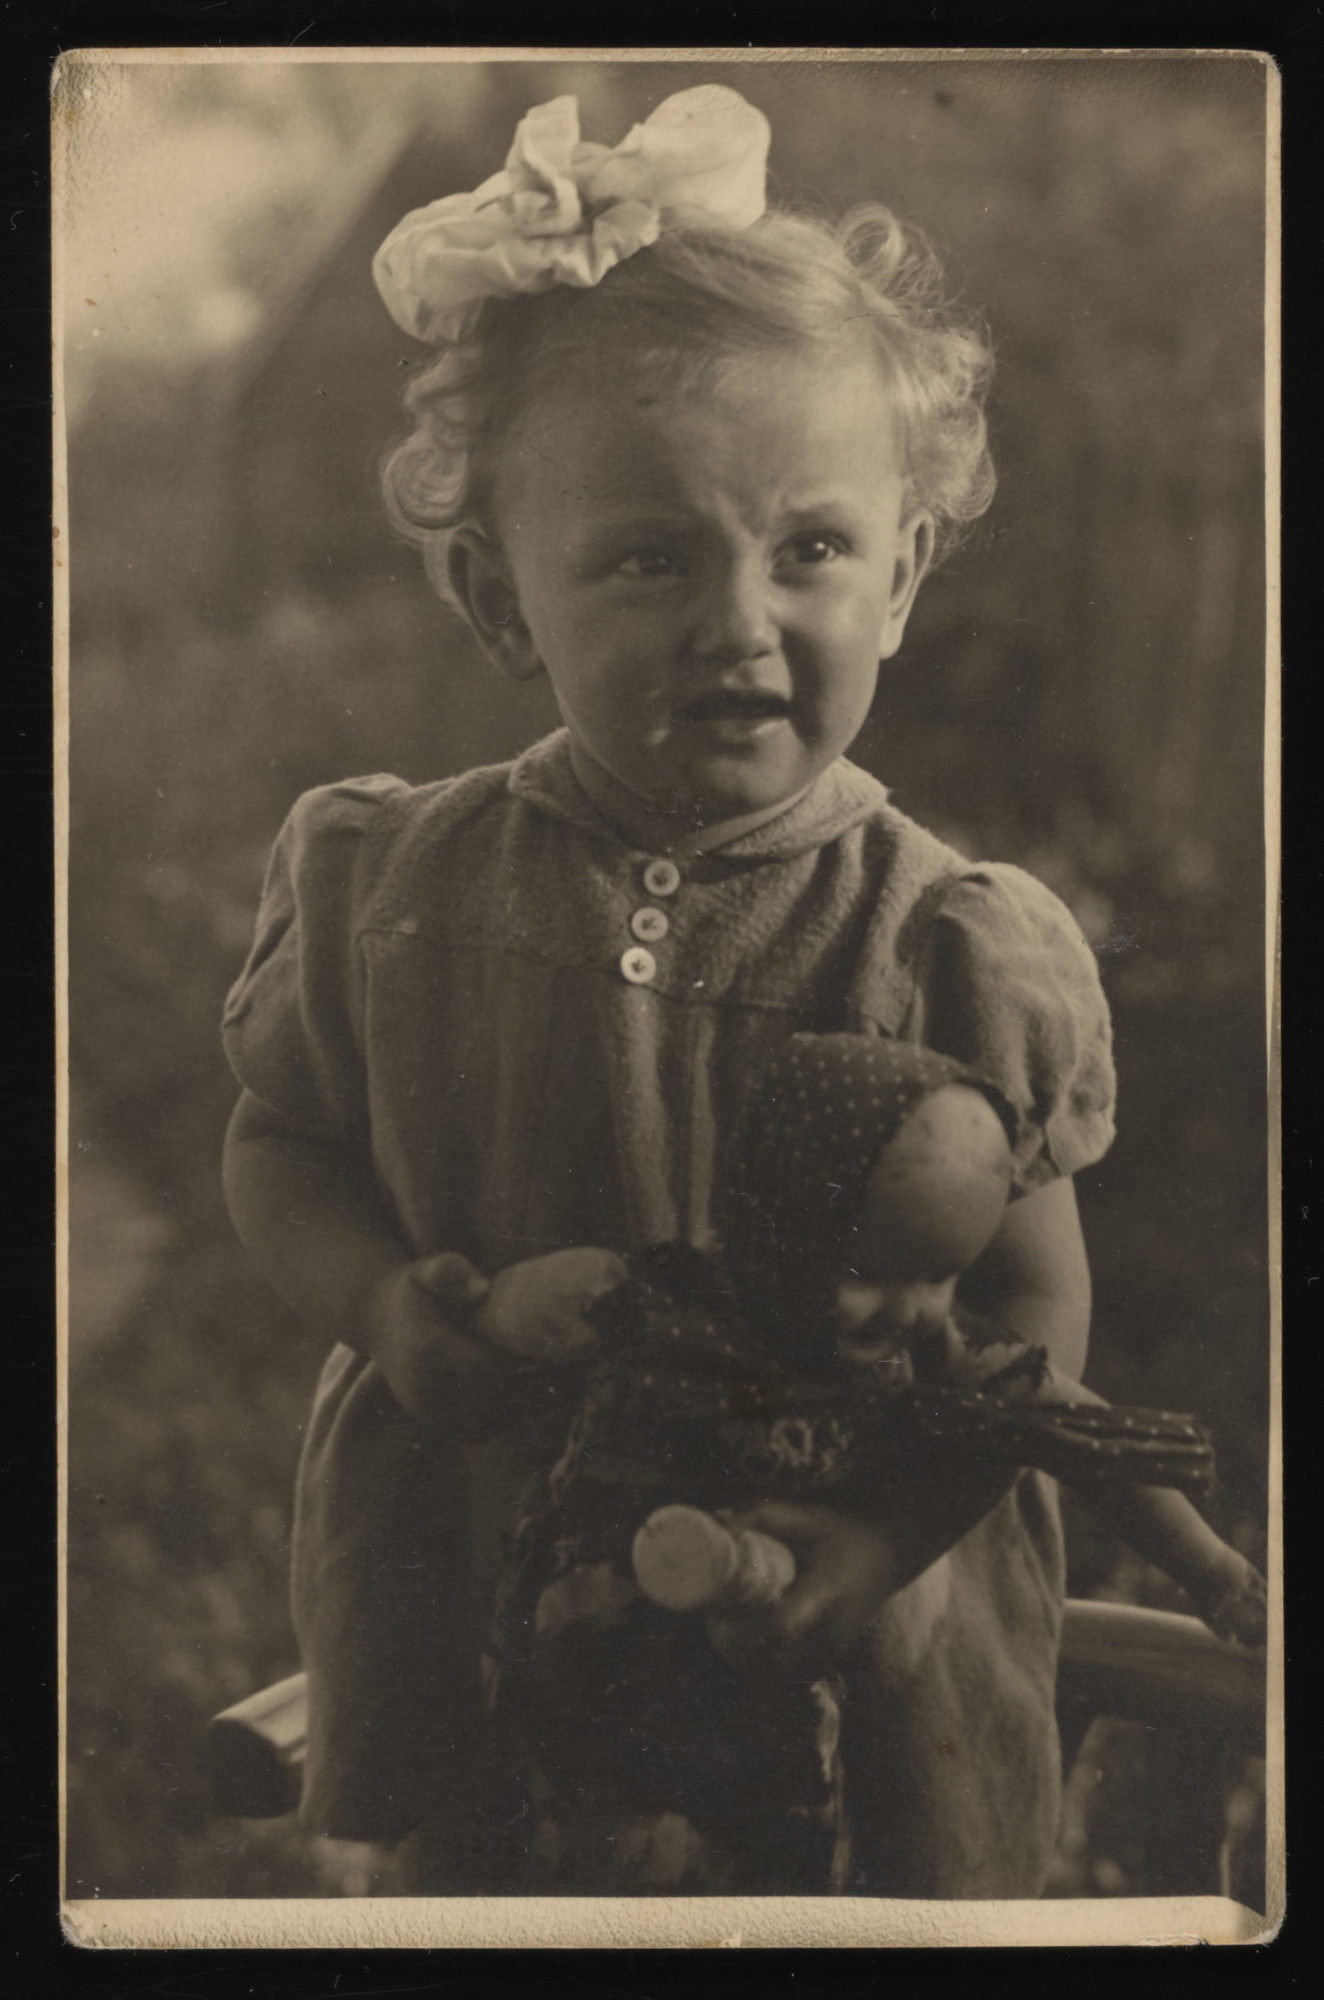 Studio portrait of Leiba Gruber (cousin of the donor) she was killed with her mother in 1943 at the age of four.